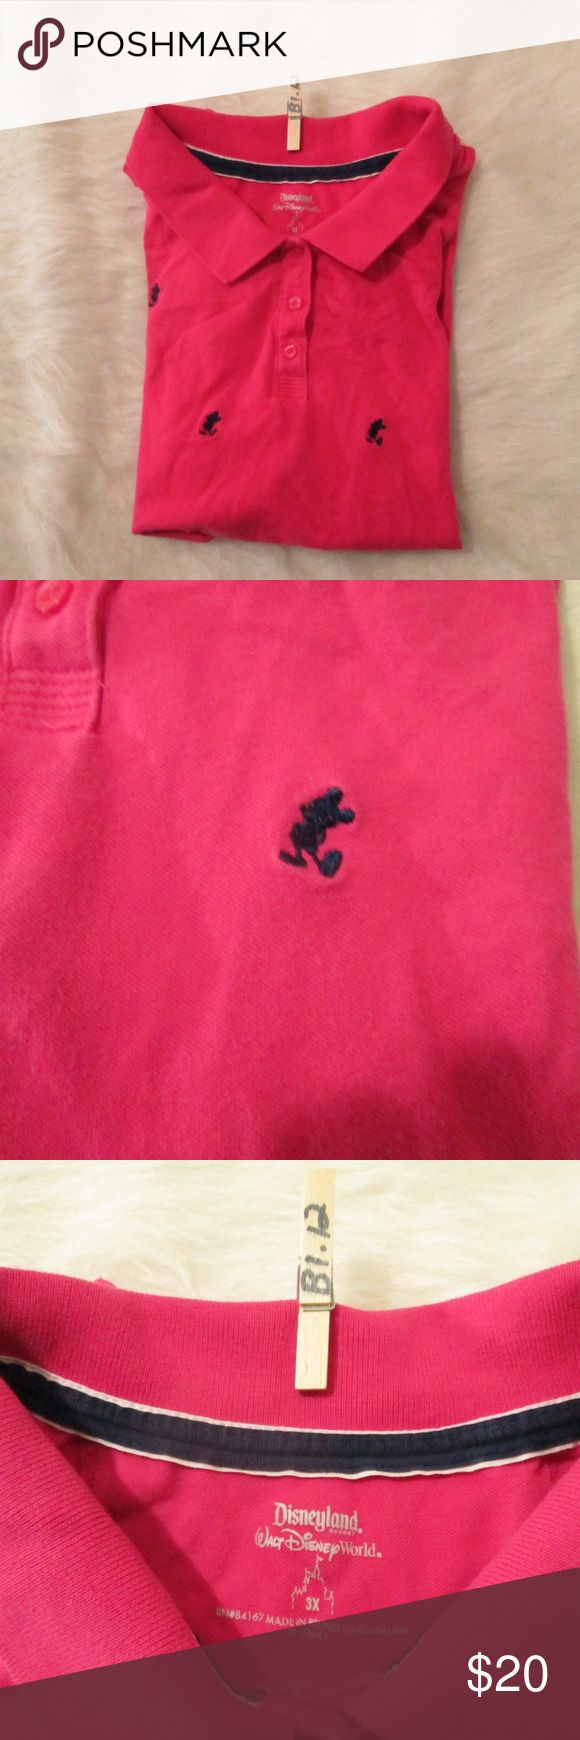 """Walt Disney World Women's 3X Tee Micky Mouse Walt Disney World Women's 3X Tee Pink Polo Shirt Micky Mouse Disneyland T-Shirt     1  100% COtton  Size 3xl    Measures 24"""" across bust  Measures 24.5"""" long, from center back  Sleeves measure 7"""" from shoulder seam  Gently worn, good condition Walt Disney World Tops Tees - Short Sleeve"""